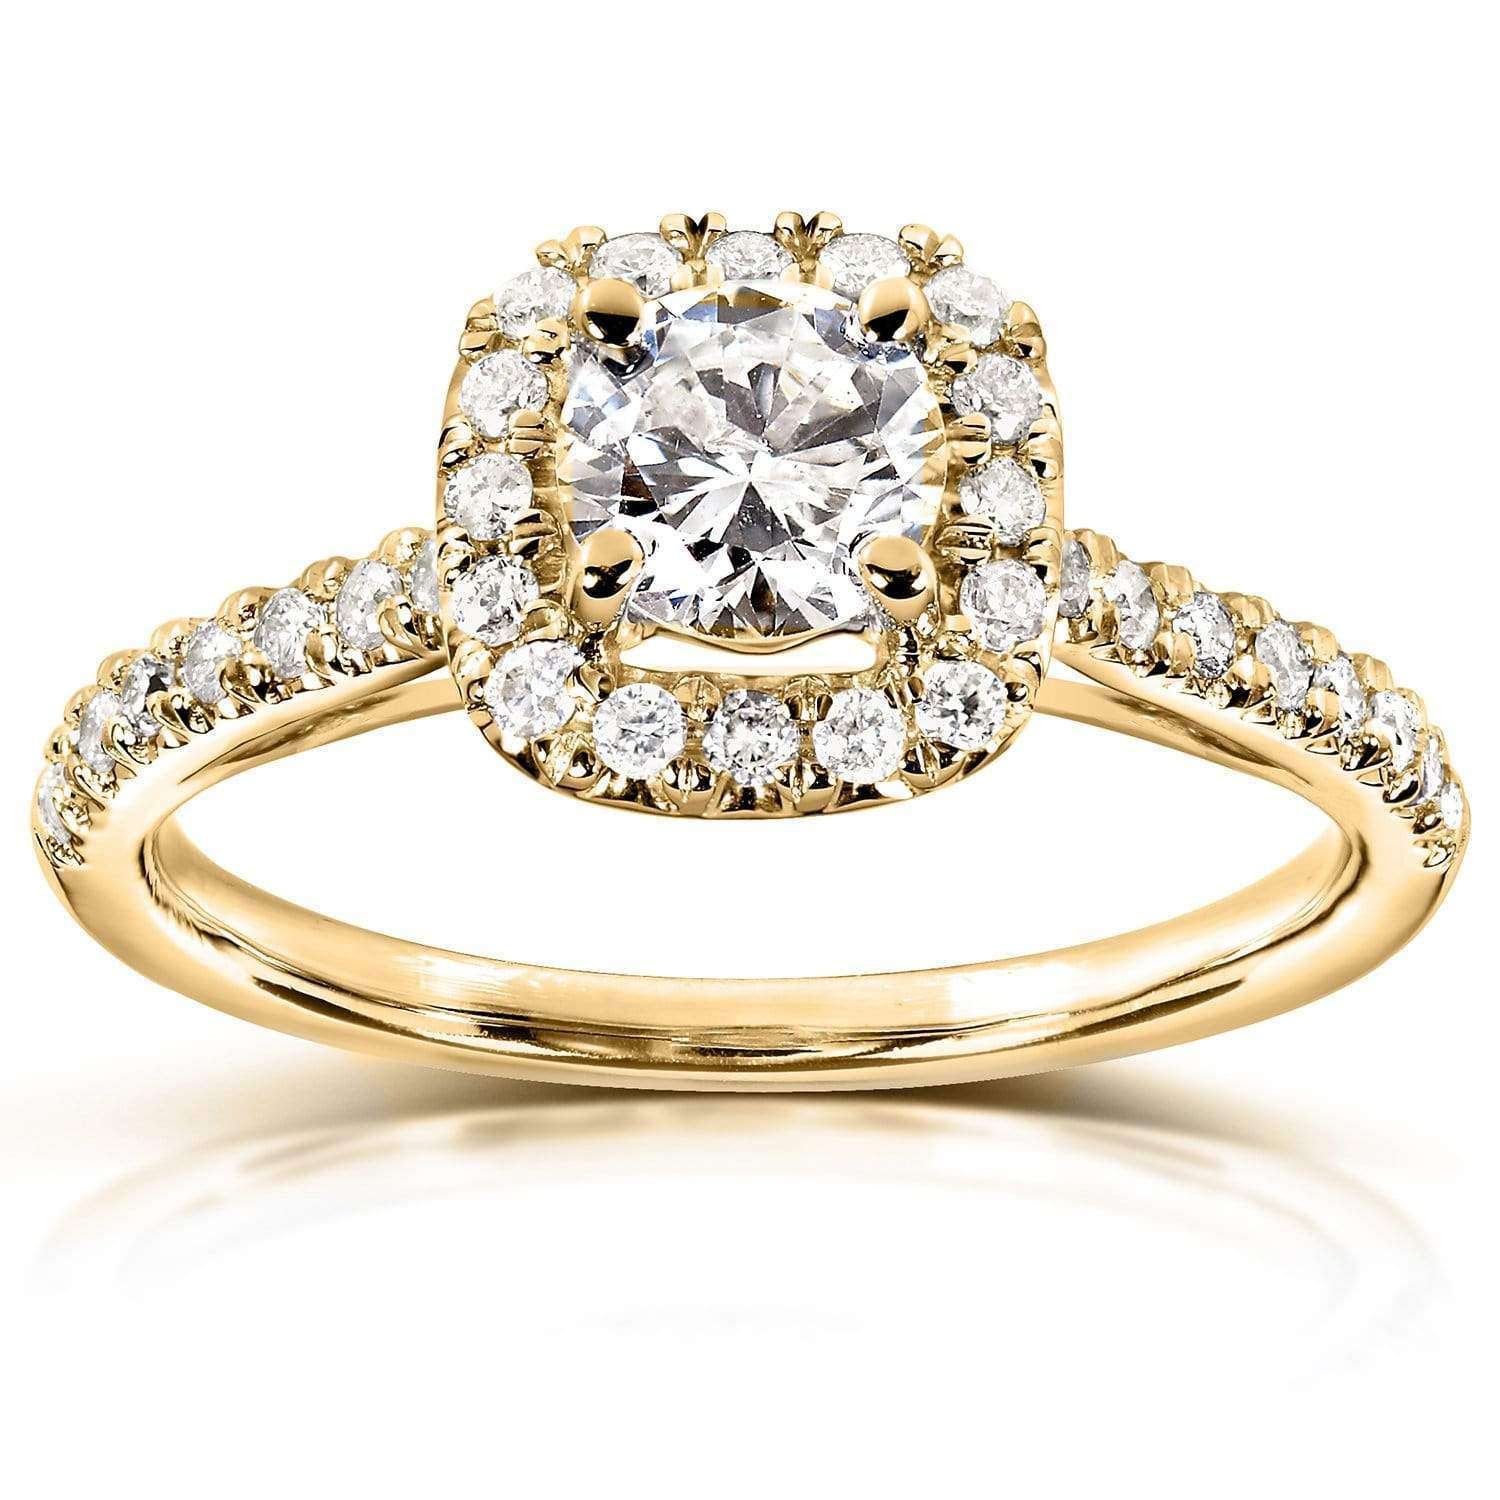 Coupons Round-Brilliant Diamond Engagement Ring 3/4 carats (ctw) in 14k Gold - yellow-gold 8.5